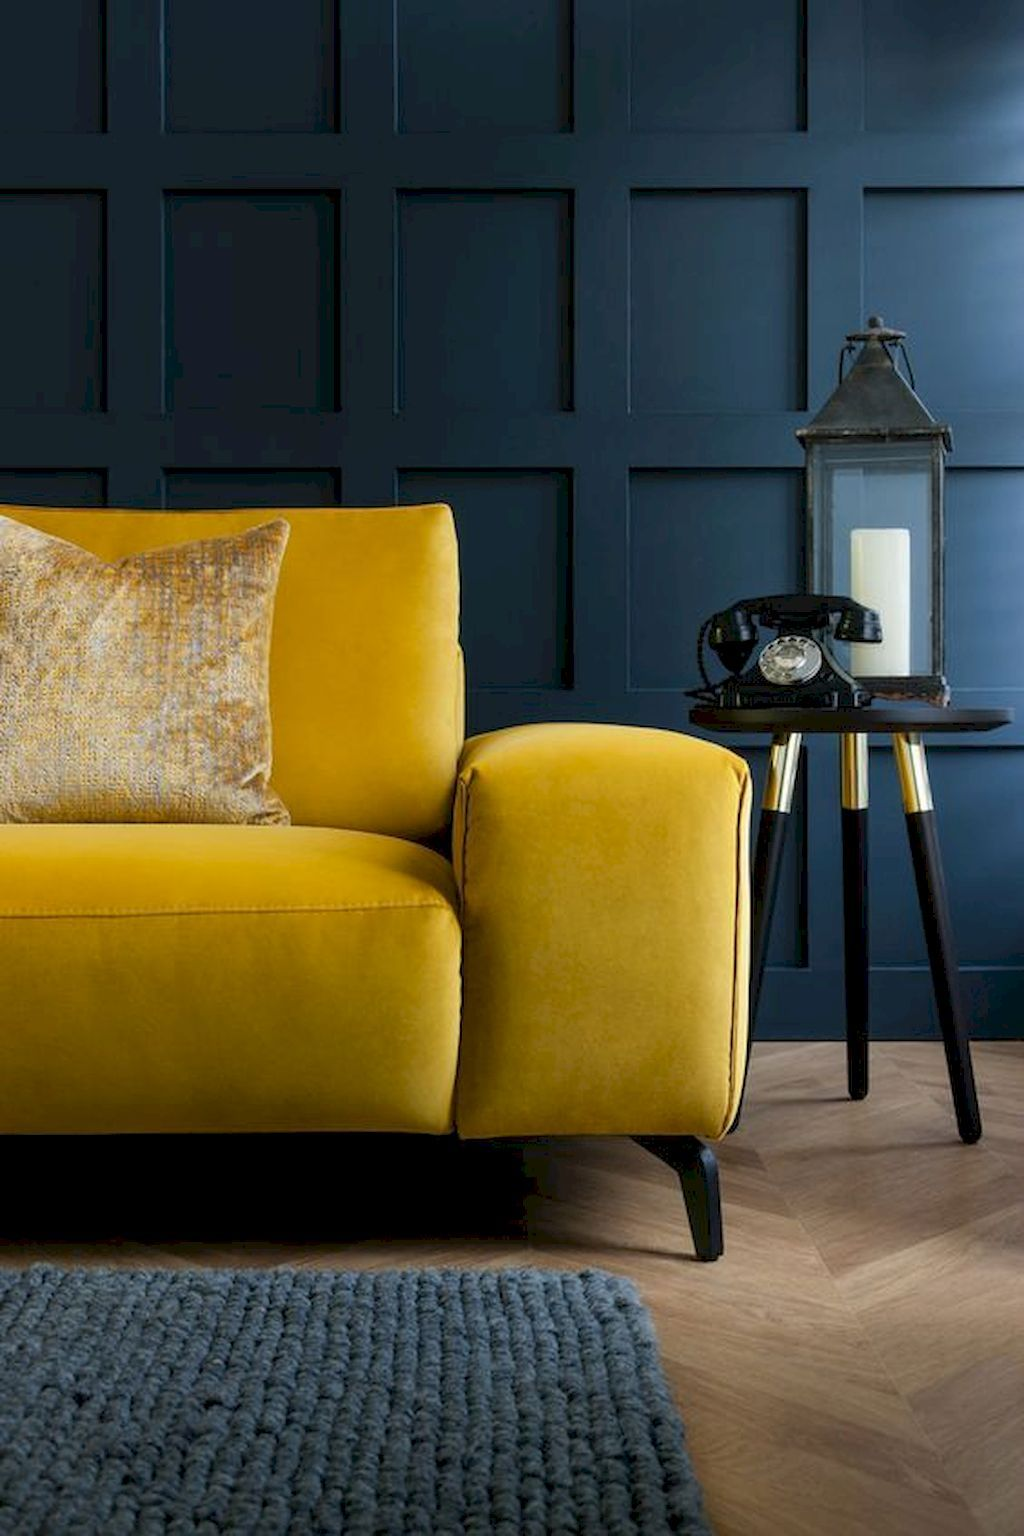 75 Beautiful Yellow Sofa for Living Room Decor Ideas #cozyliving